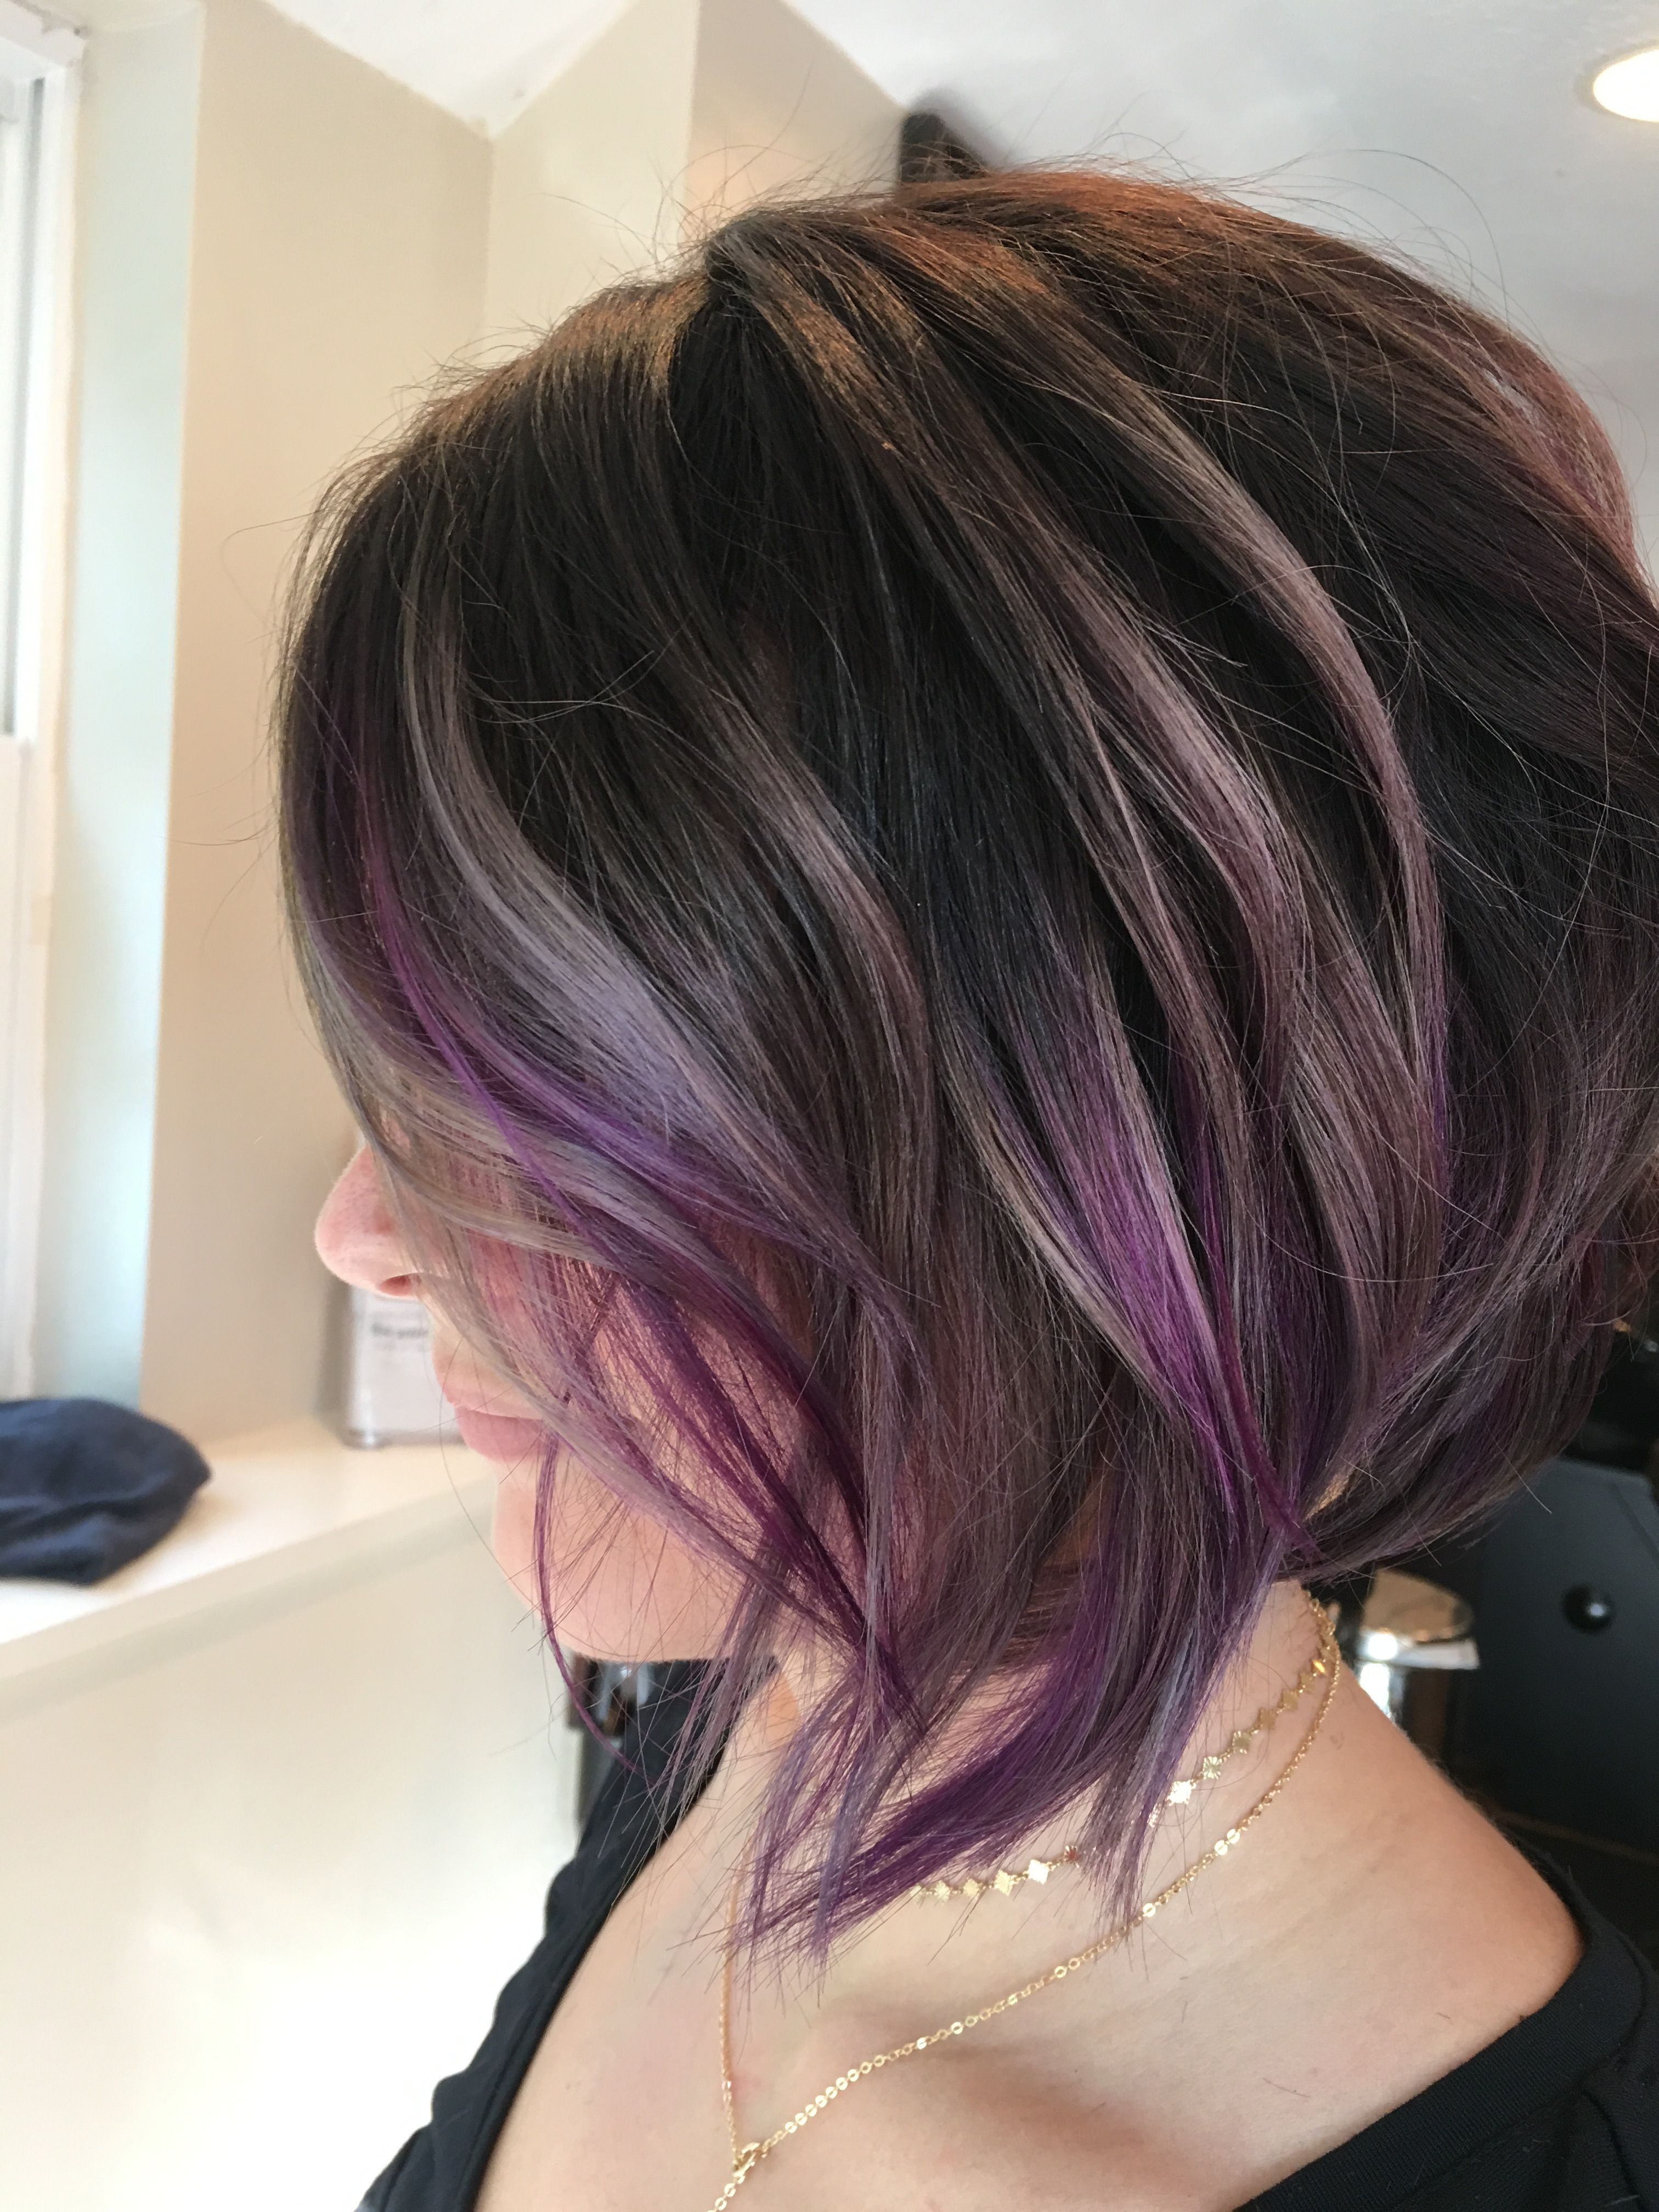 Wavy Asymmetrical Bob #pravana Locked In Purple And Silver Regarding Silver Bob Hairstyles With Hint Of Purple (View 13 of 20)